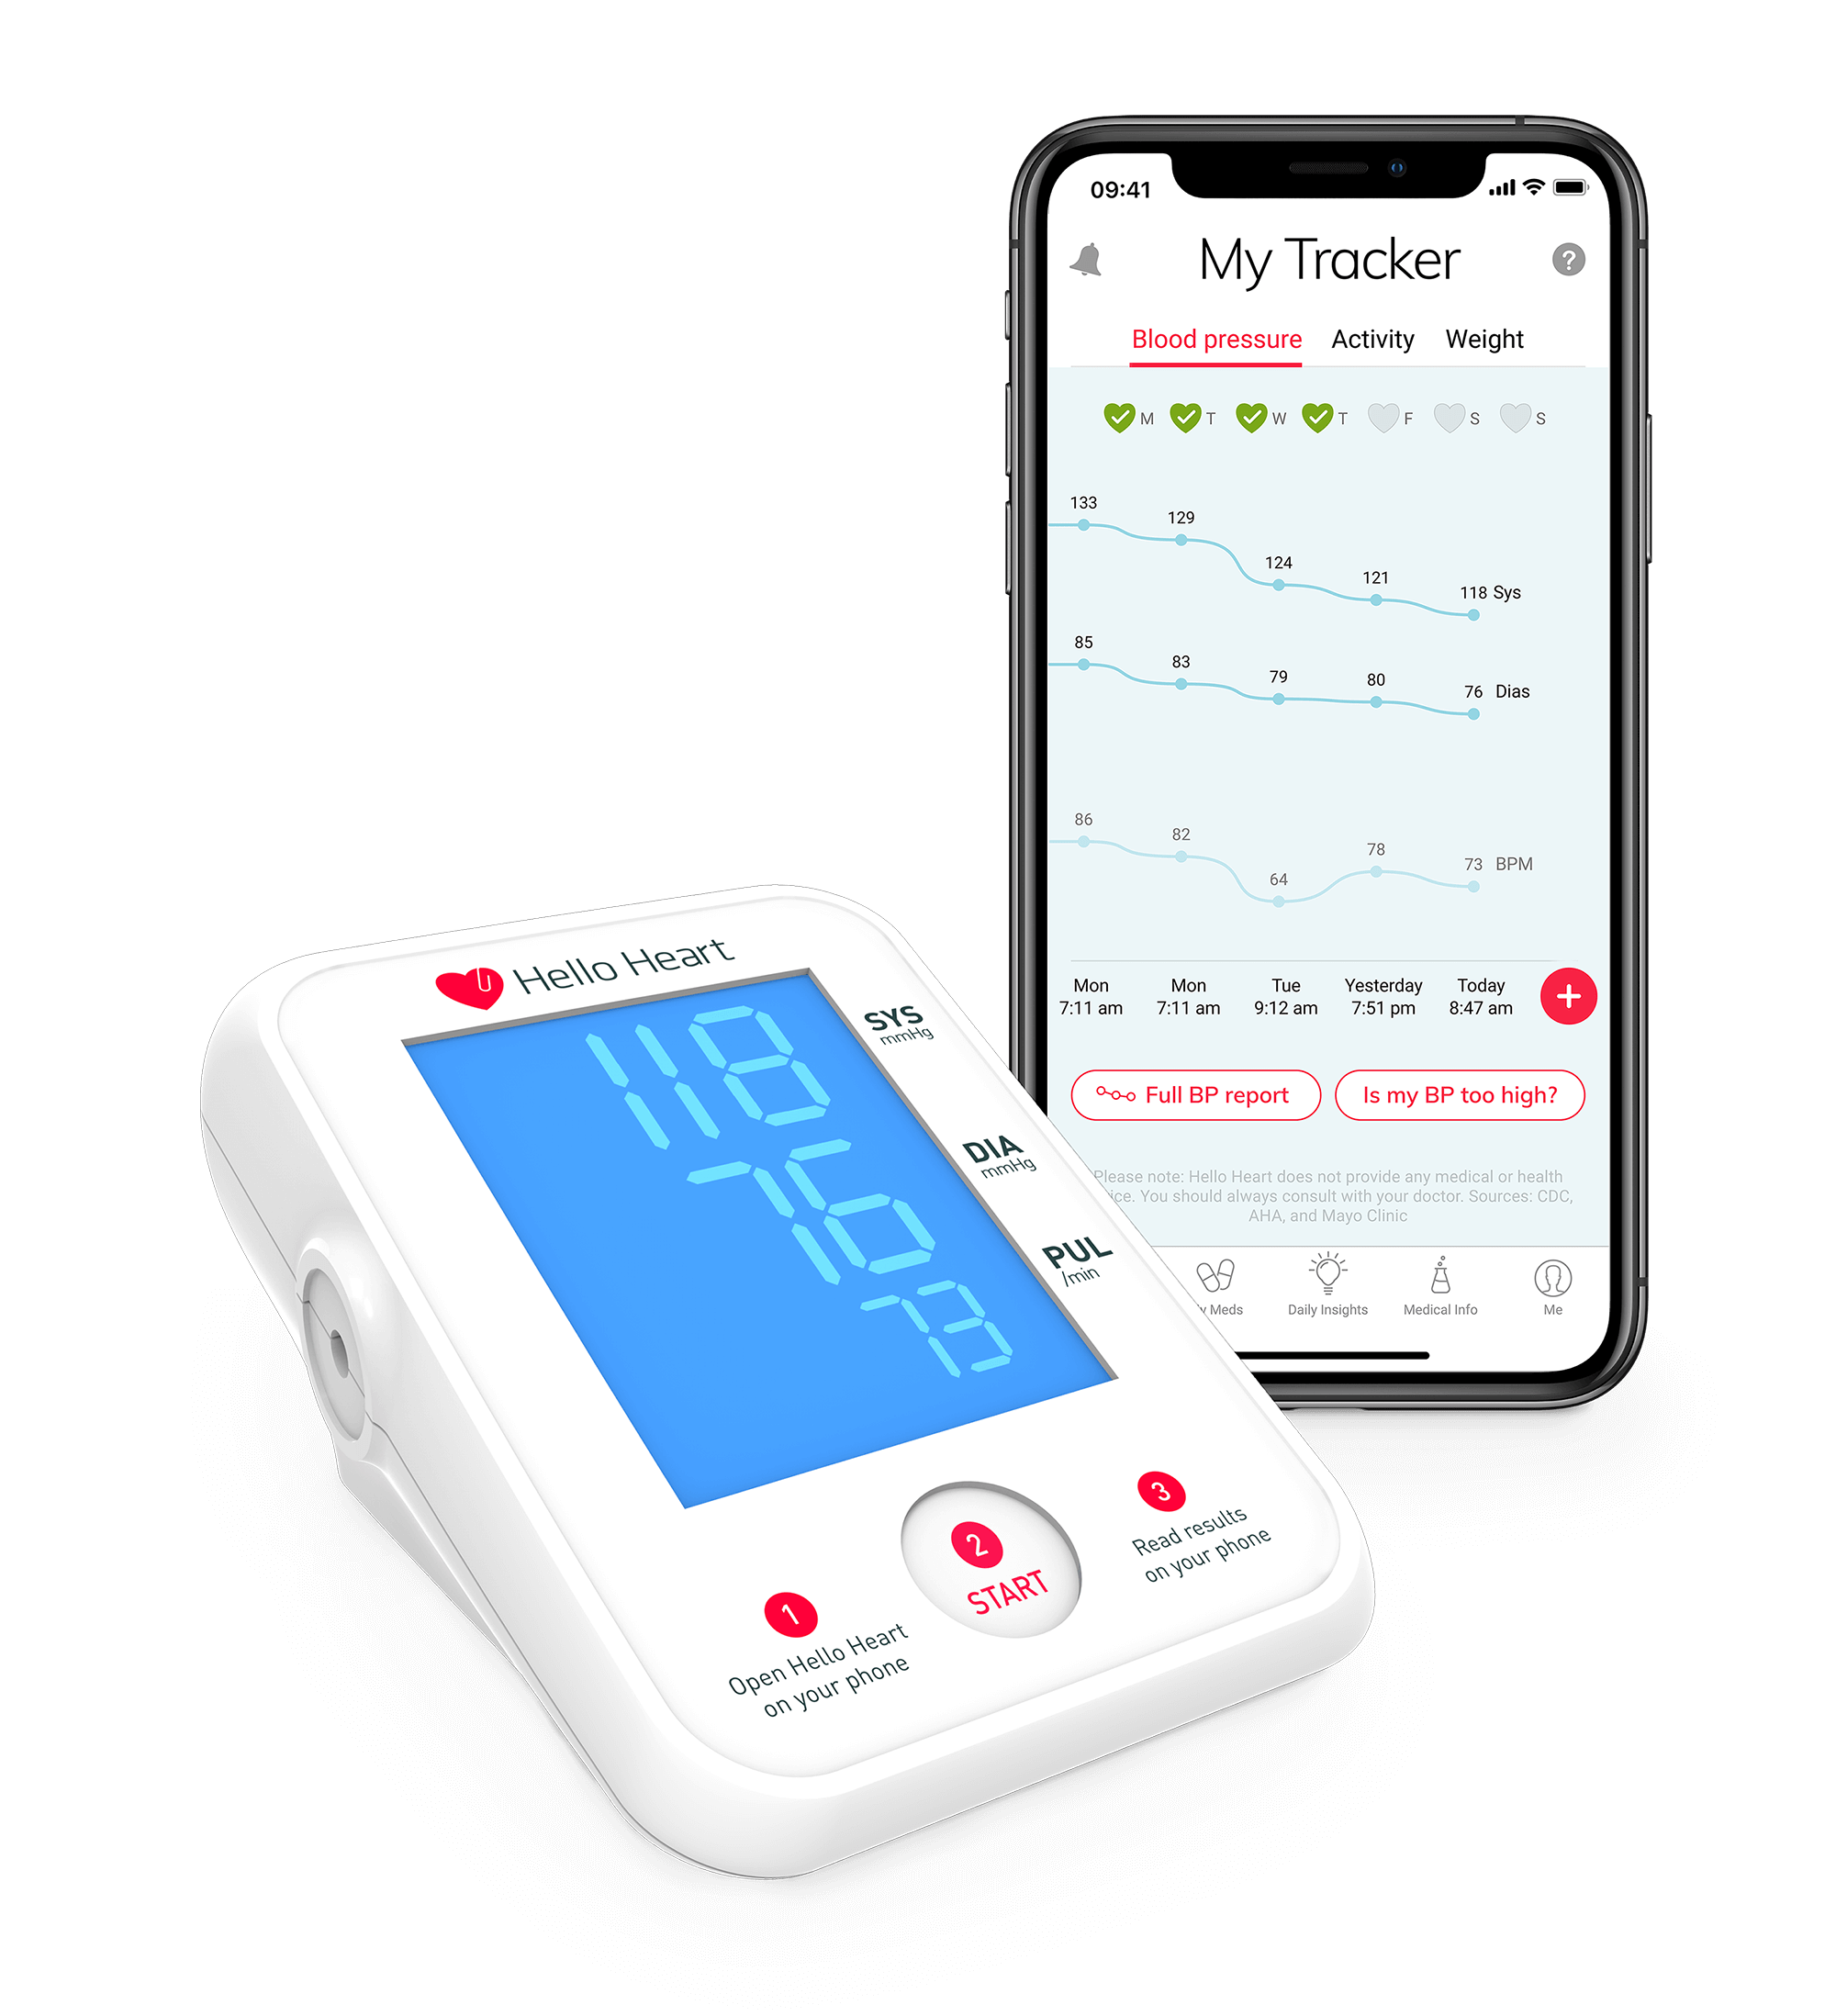 The Hello Hear app and blood pressure monitor